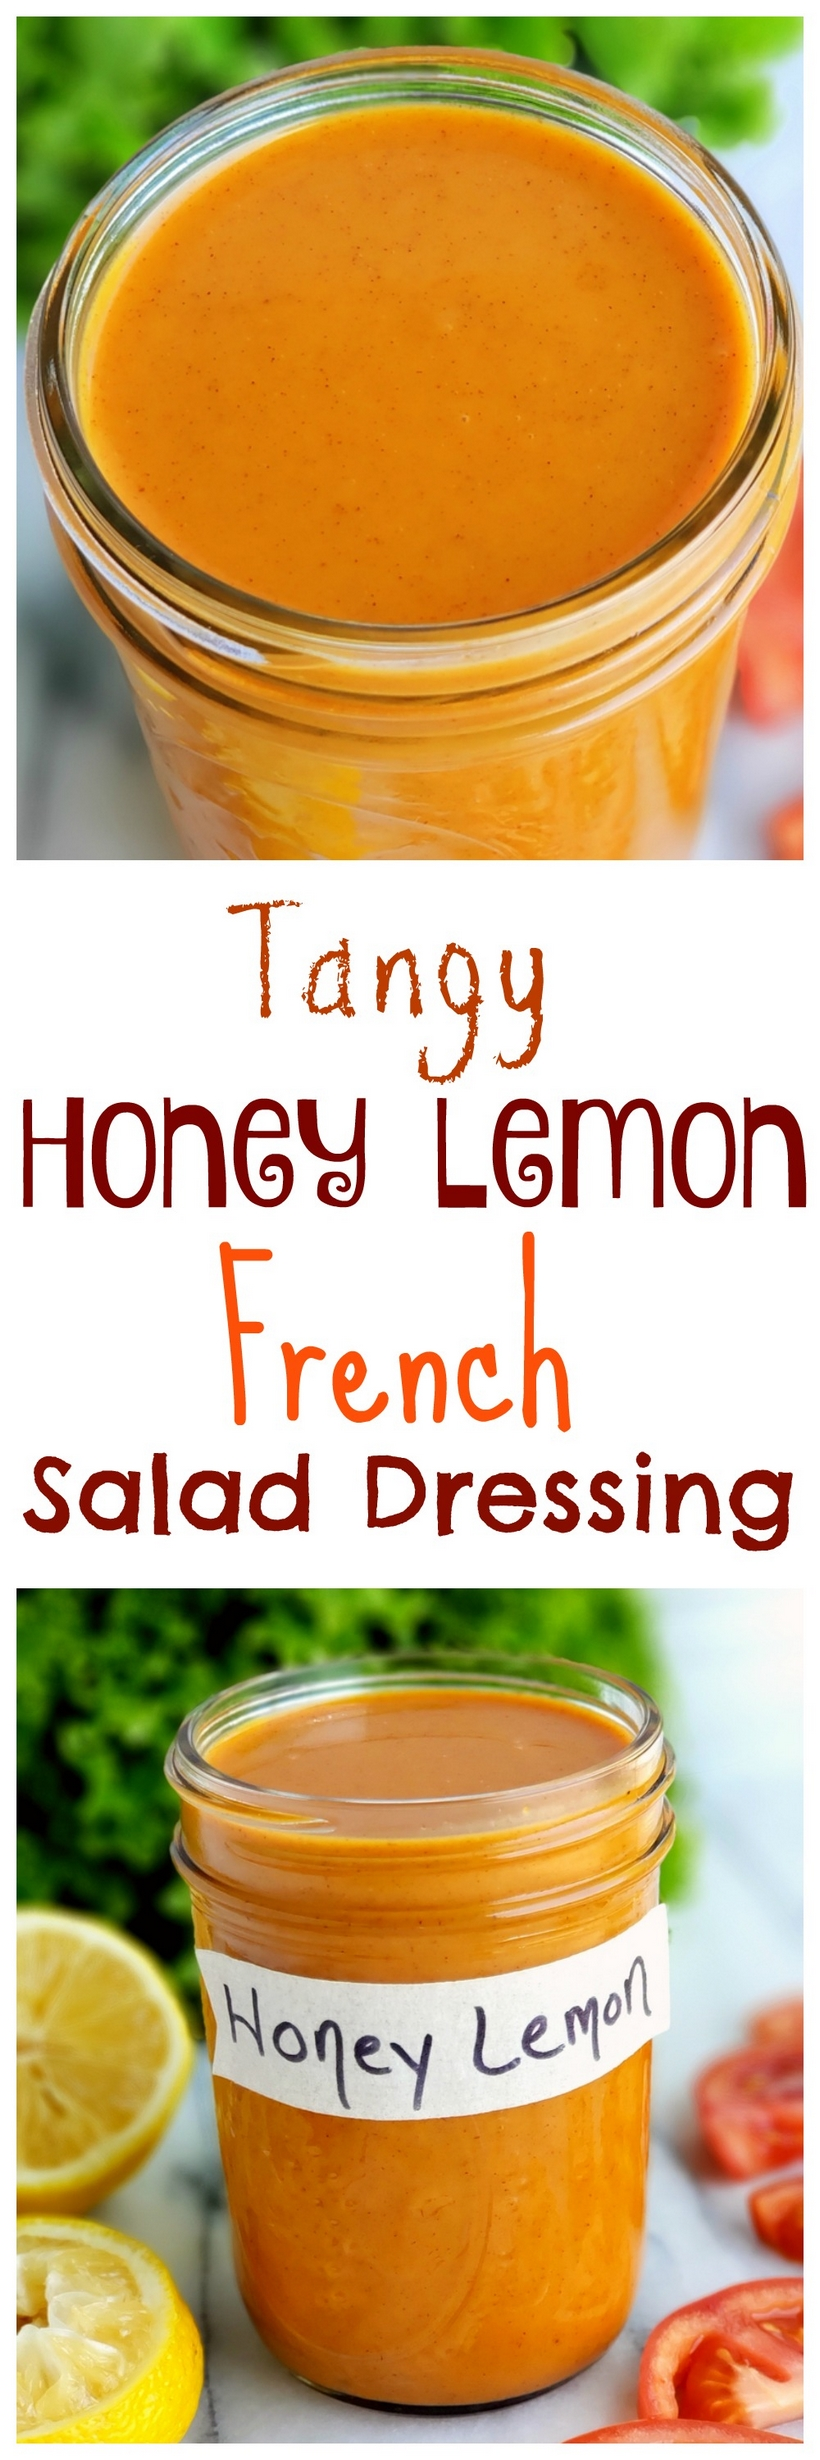 Jazz up your favorite salad with this semi-homemade Tangy Honey Lemon French Salad Dressing . This zippy salad dressing is tastebud tingling and comes together quickly with staple ingredients. via @cmpollak1